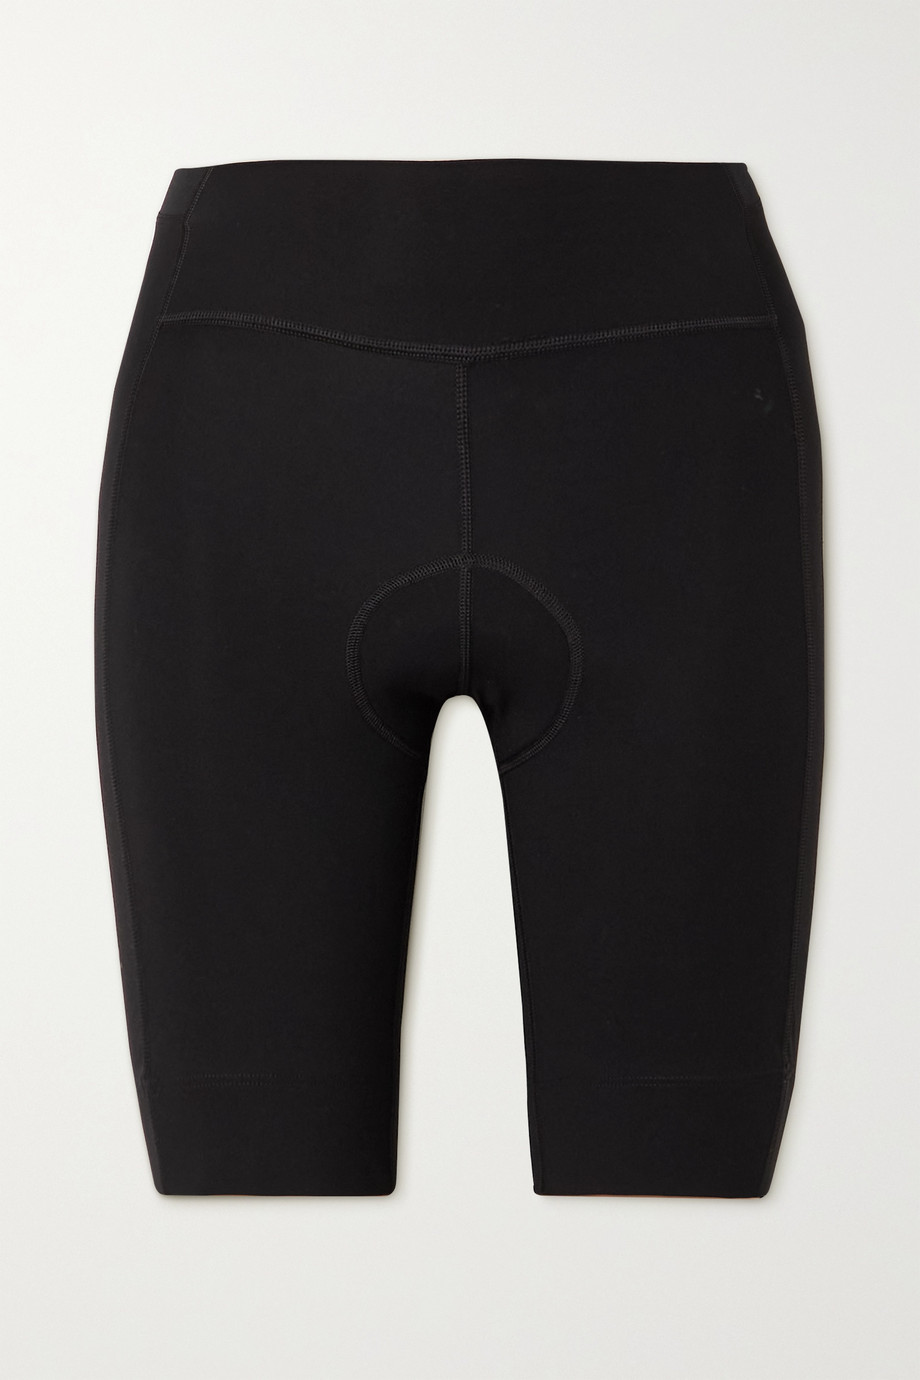 Rapha Classic recycled stretch cycling shorts